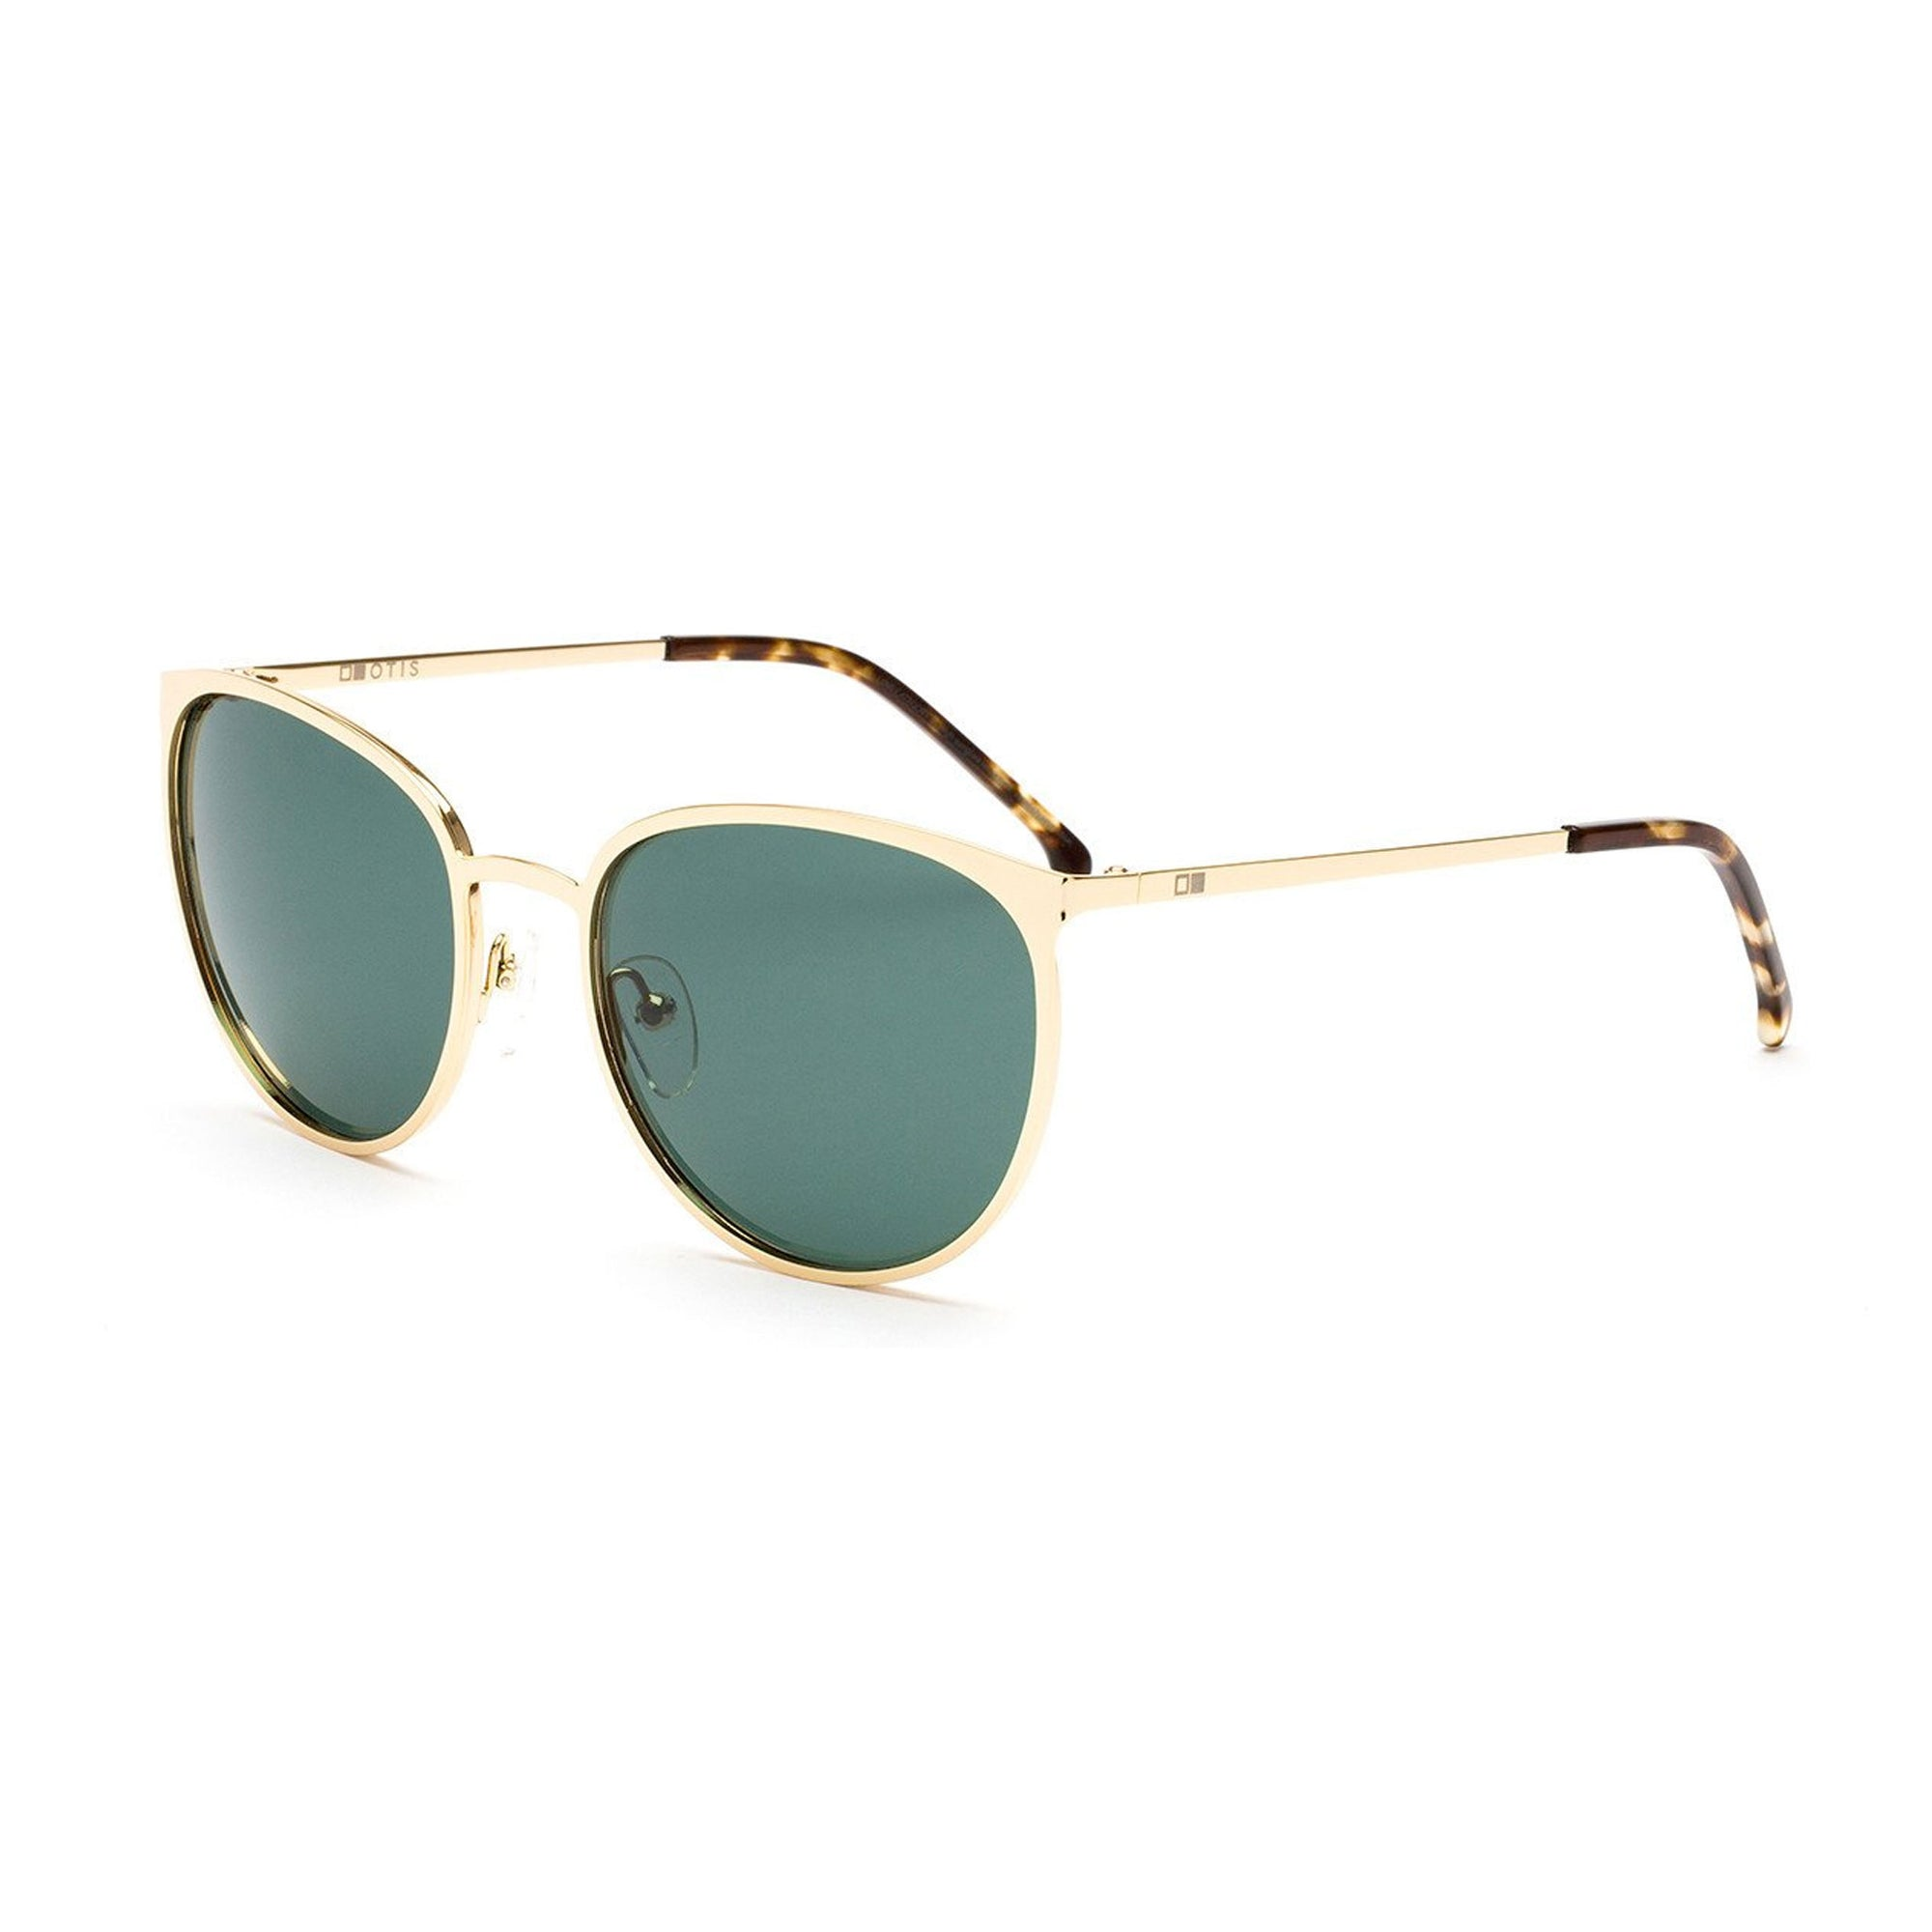 Otis Rumours Women's Sunglasses - Gold/Green - Sale